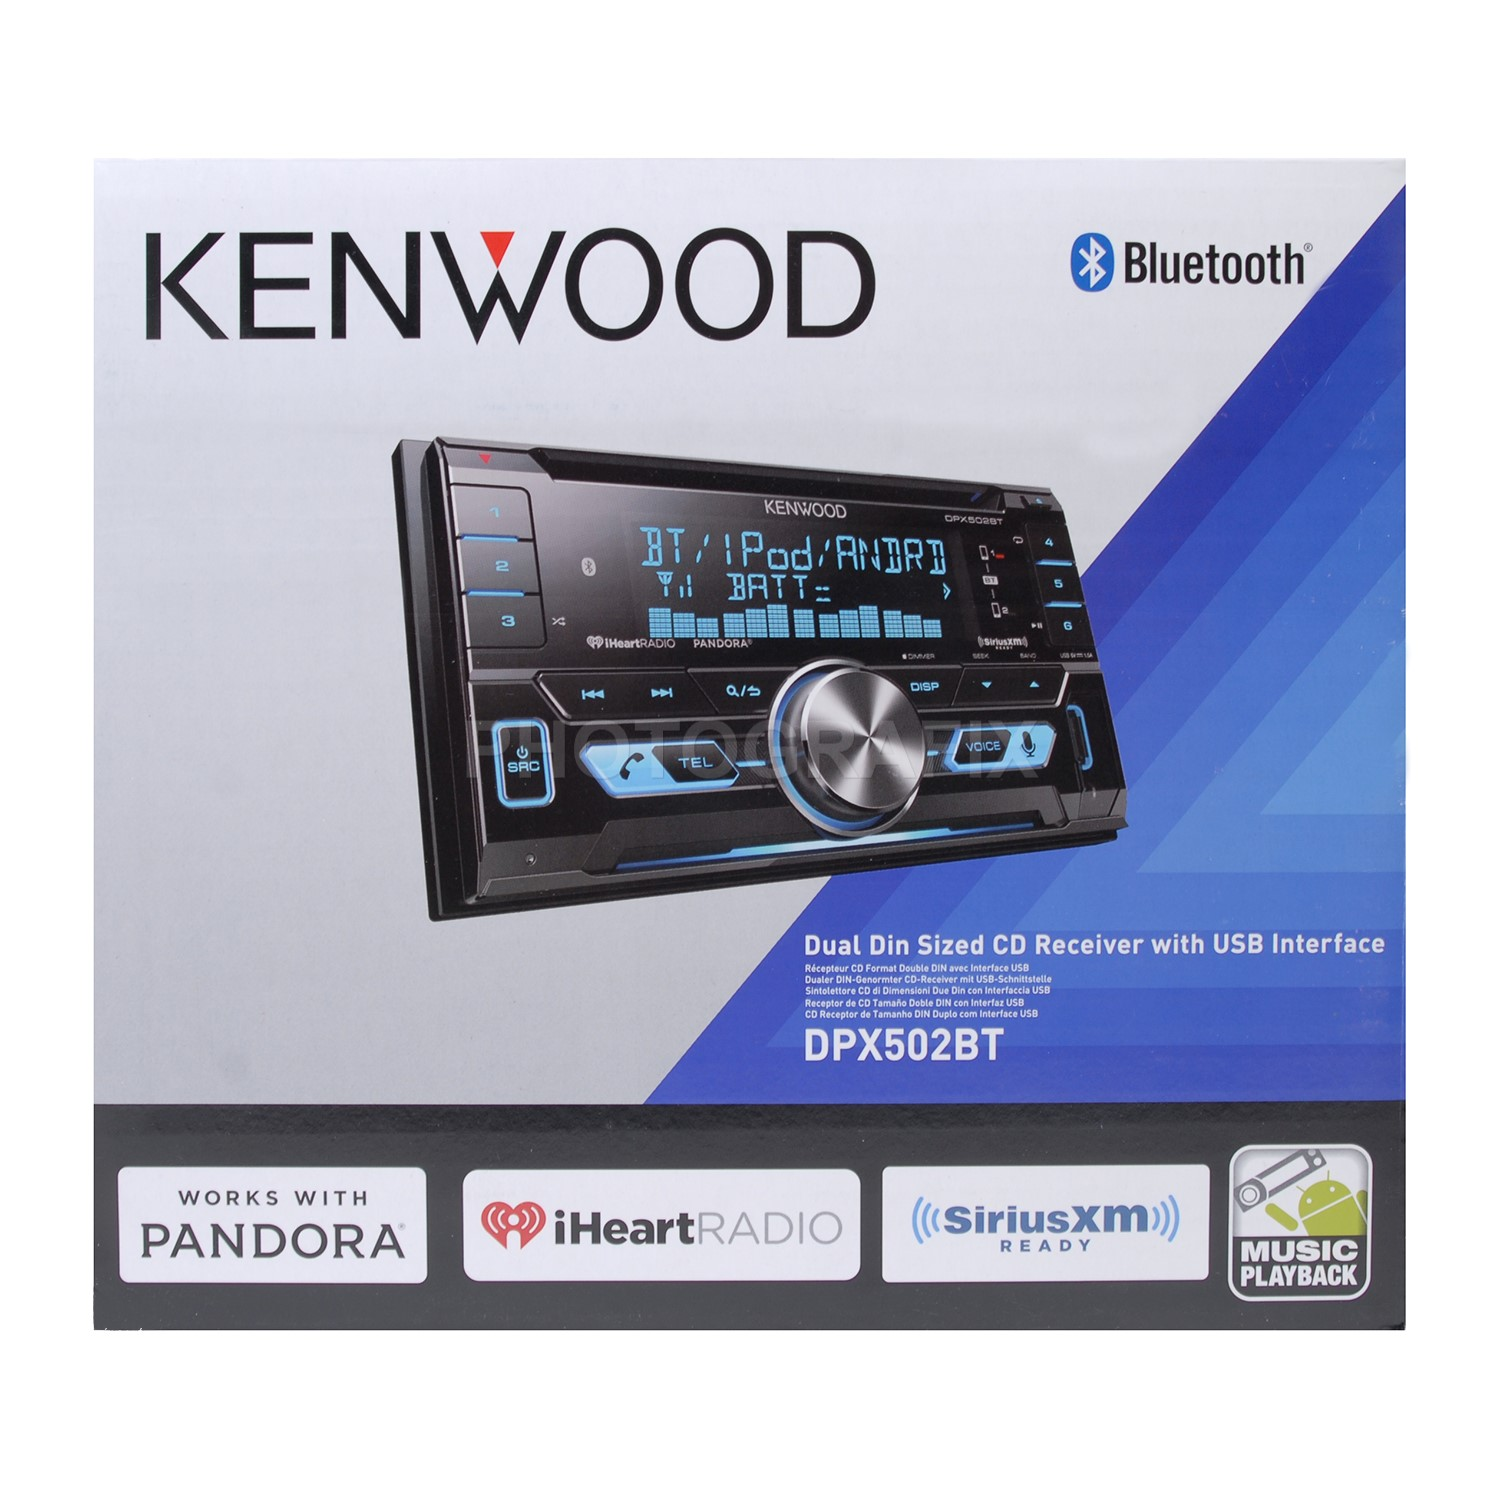 Kenwood DPX502BT Double DIN CD Bluetooth Car Stereo